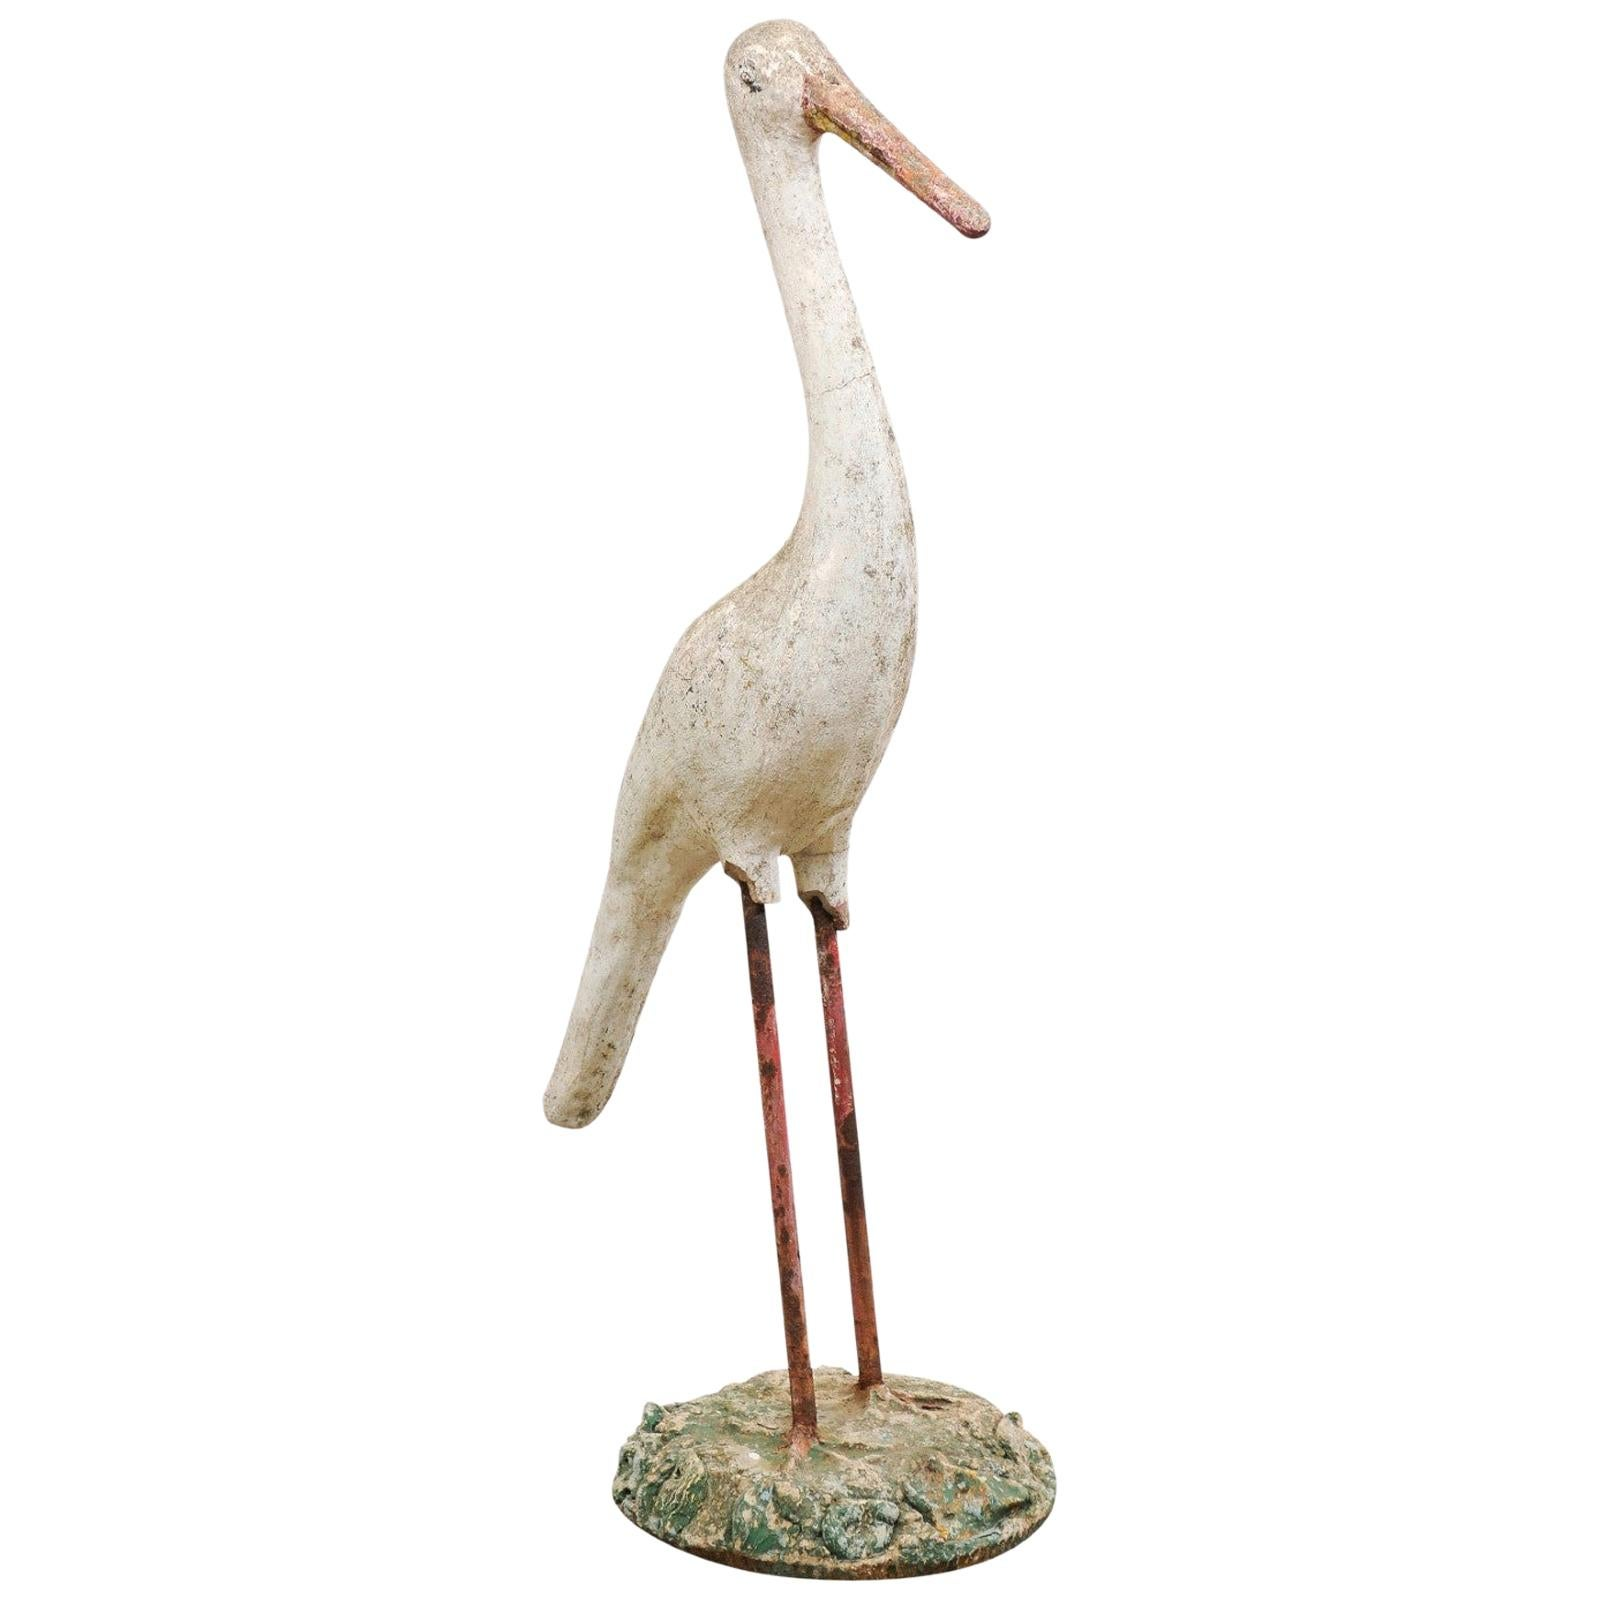 French Garden Statue of a Standing Crane